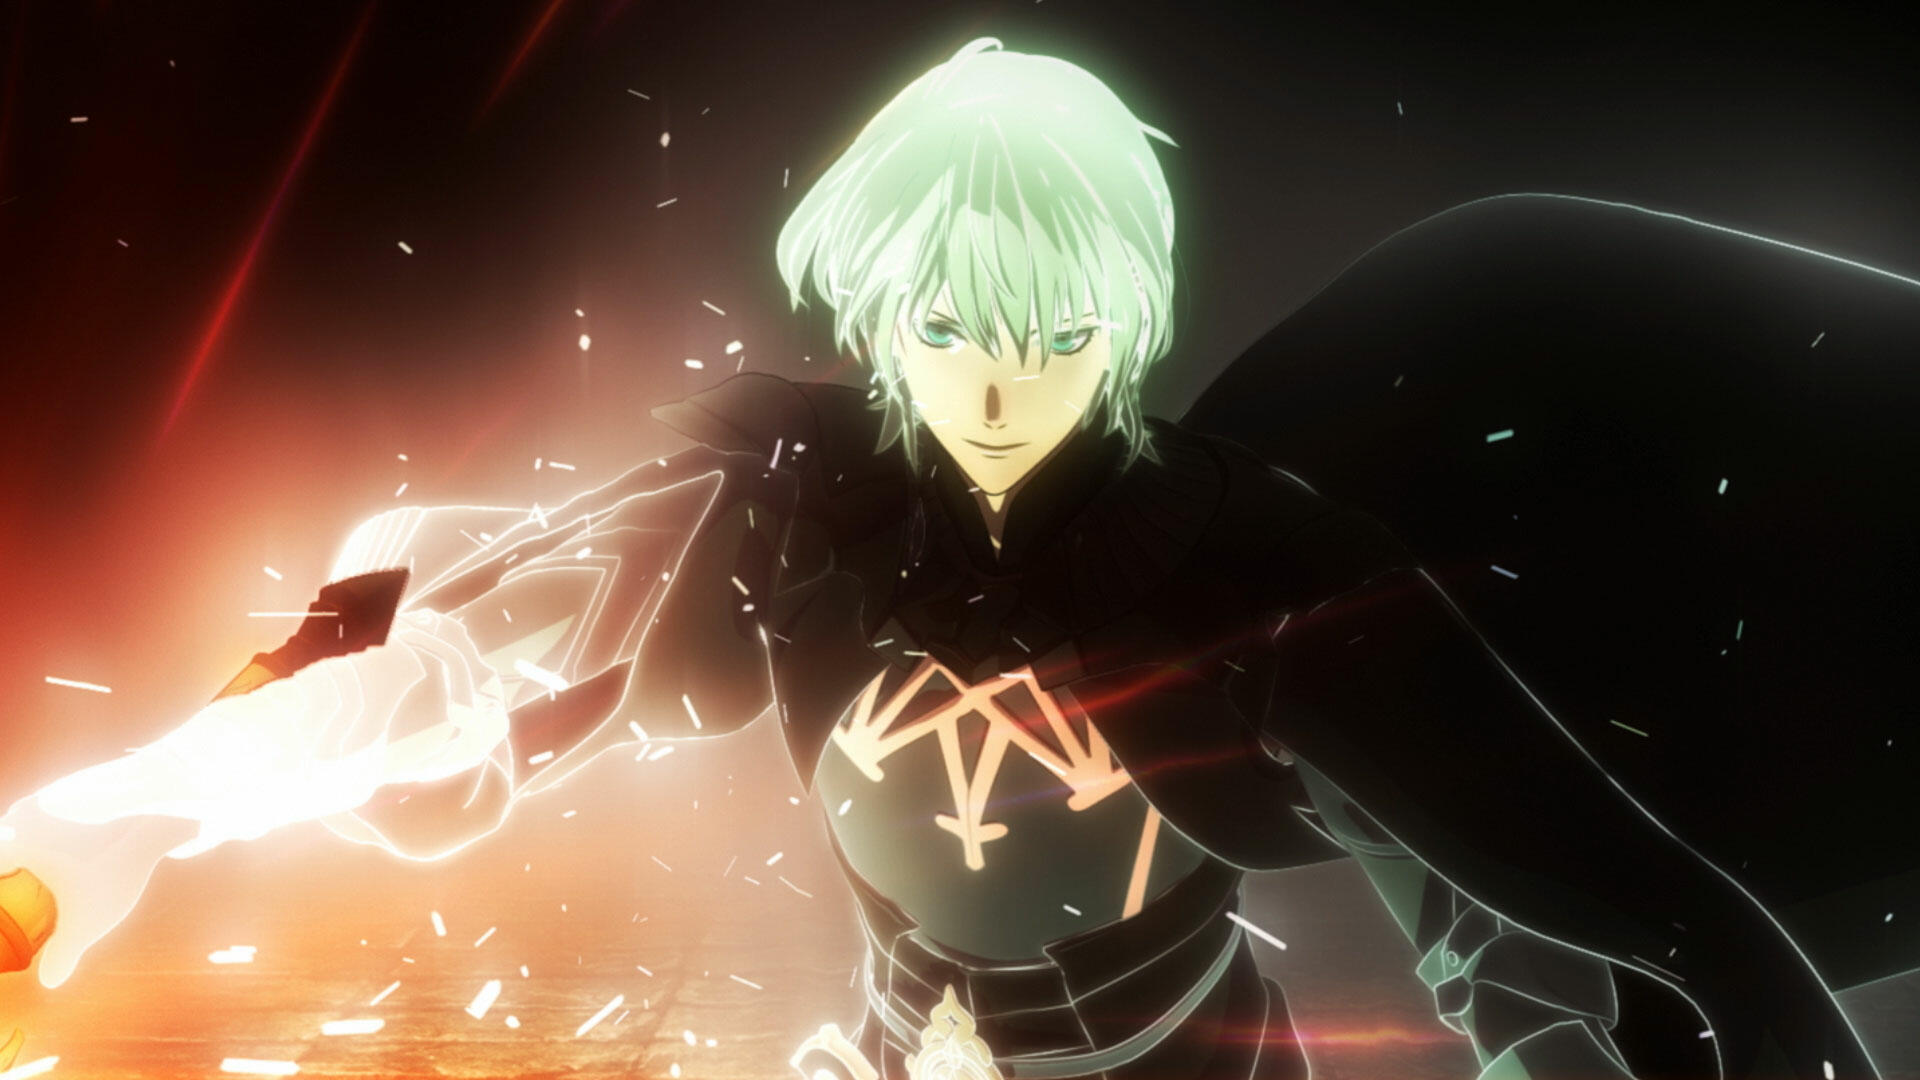 Male Byleth Lines Being Re-Recorded in Fire Emblem: Three Houses After Controversy, Nintendo Confirms